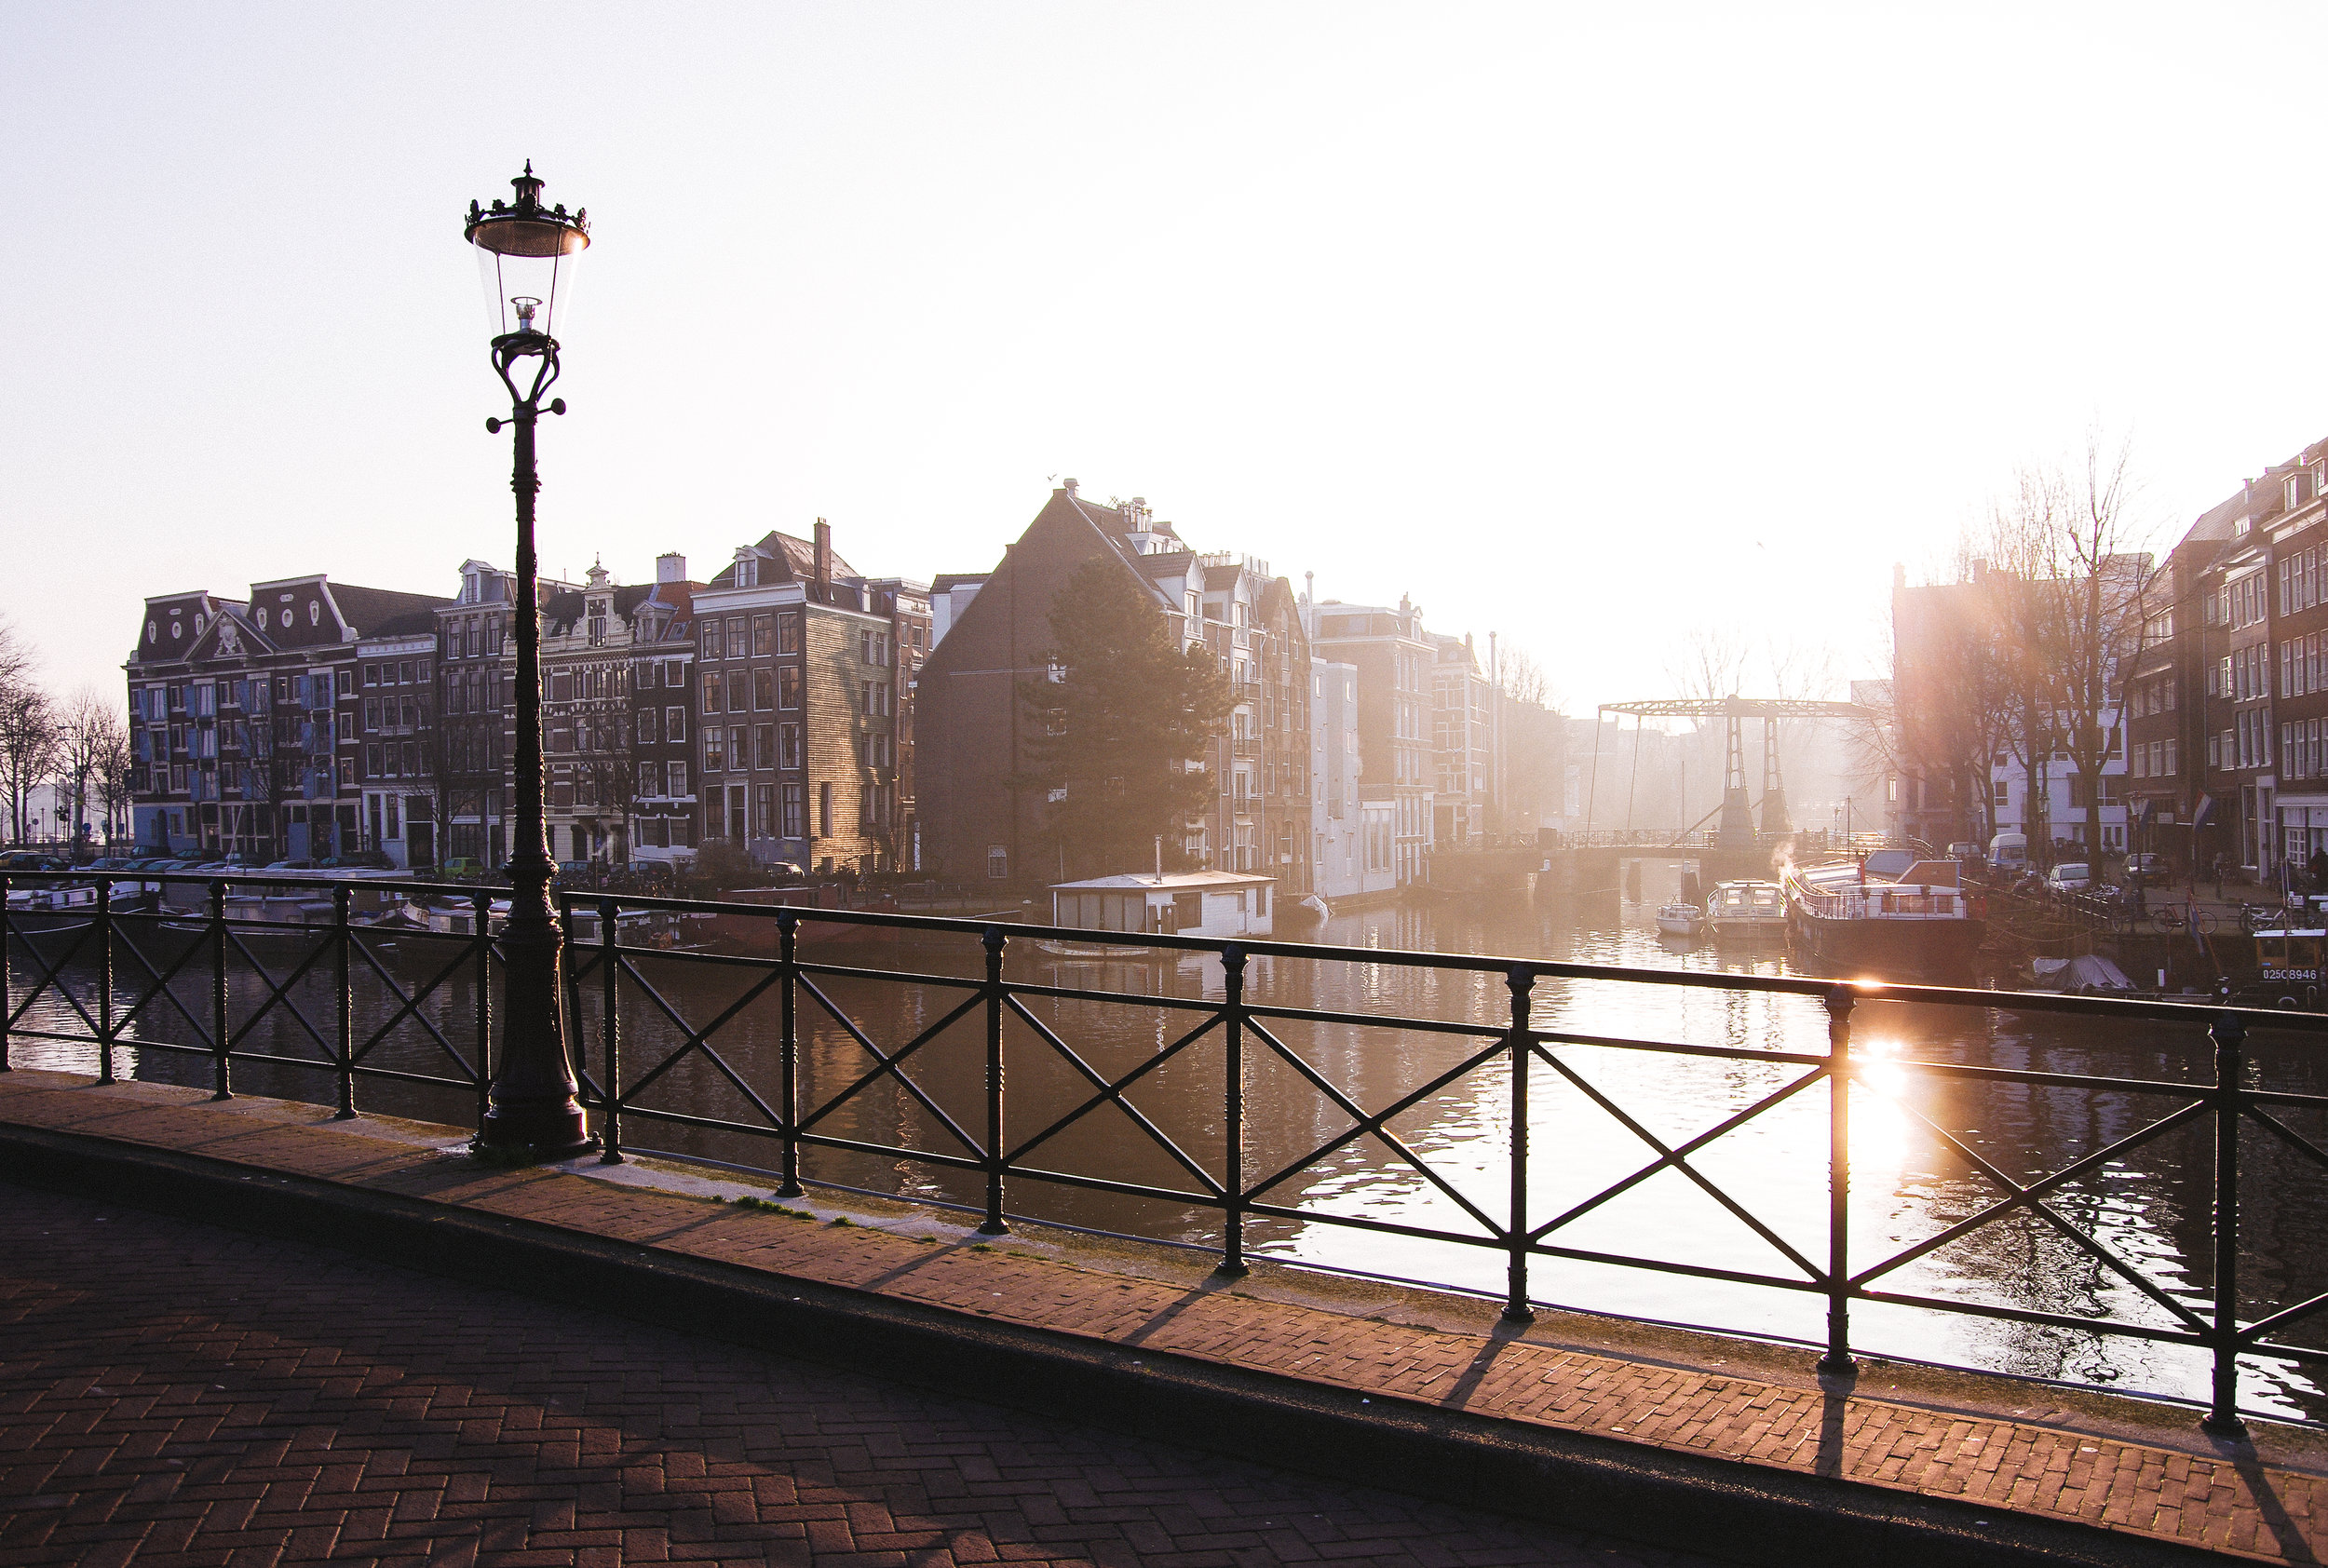 Amsterdam Light 01 by Andra Stefan - Amsterdamming.jpg